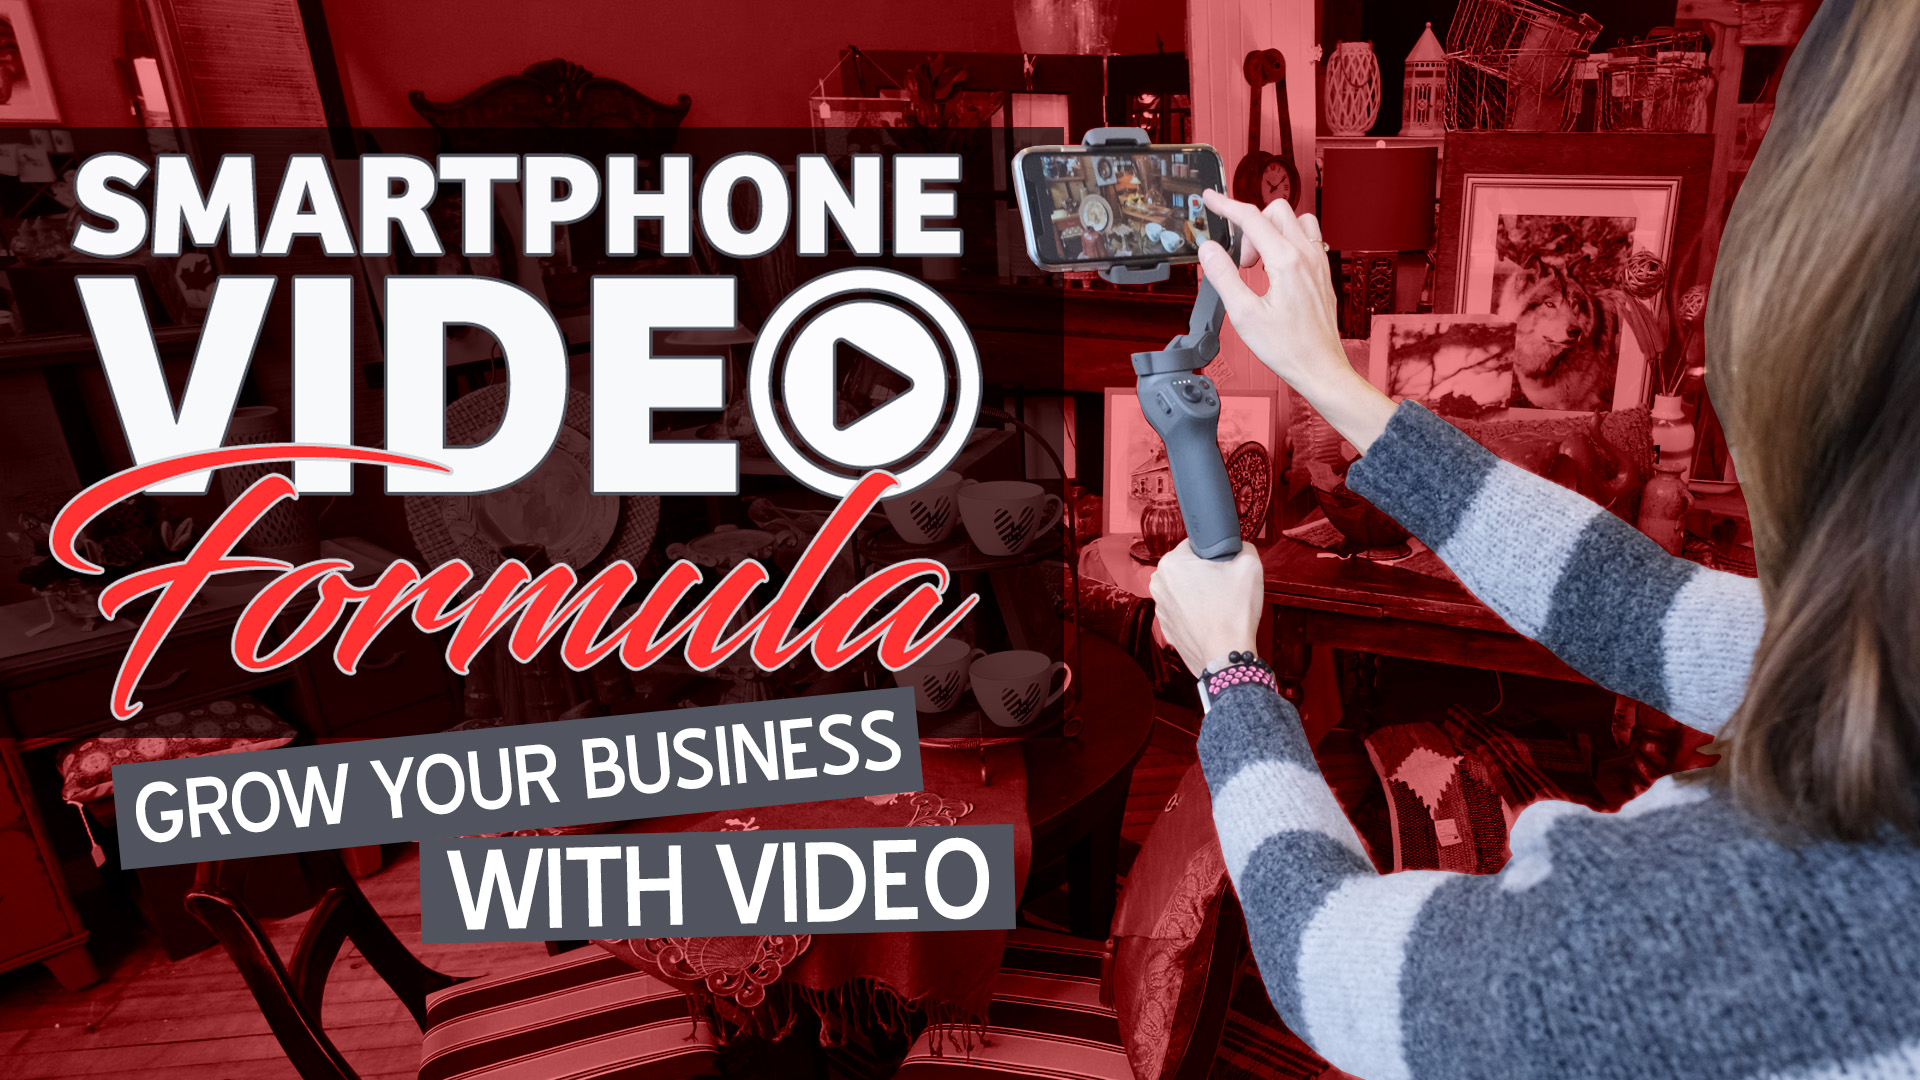 Learn how to filed, edit, share and promote high-quality videos about your business with your phone - Smartphone Video Formula